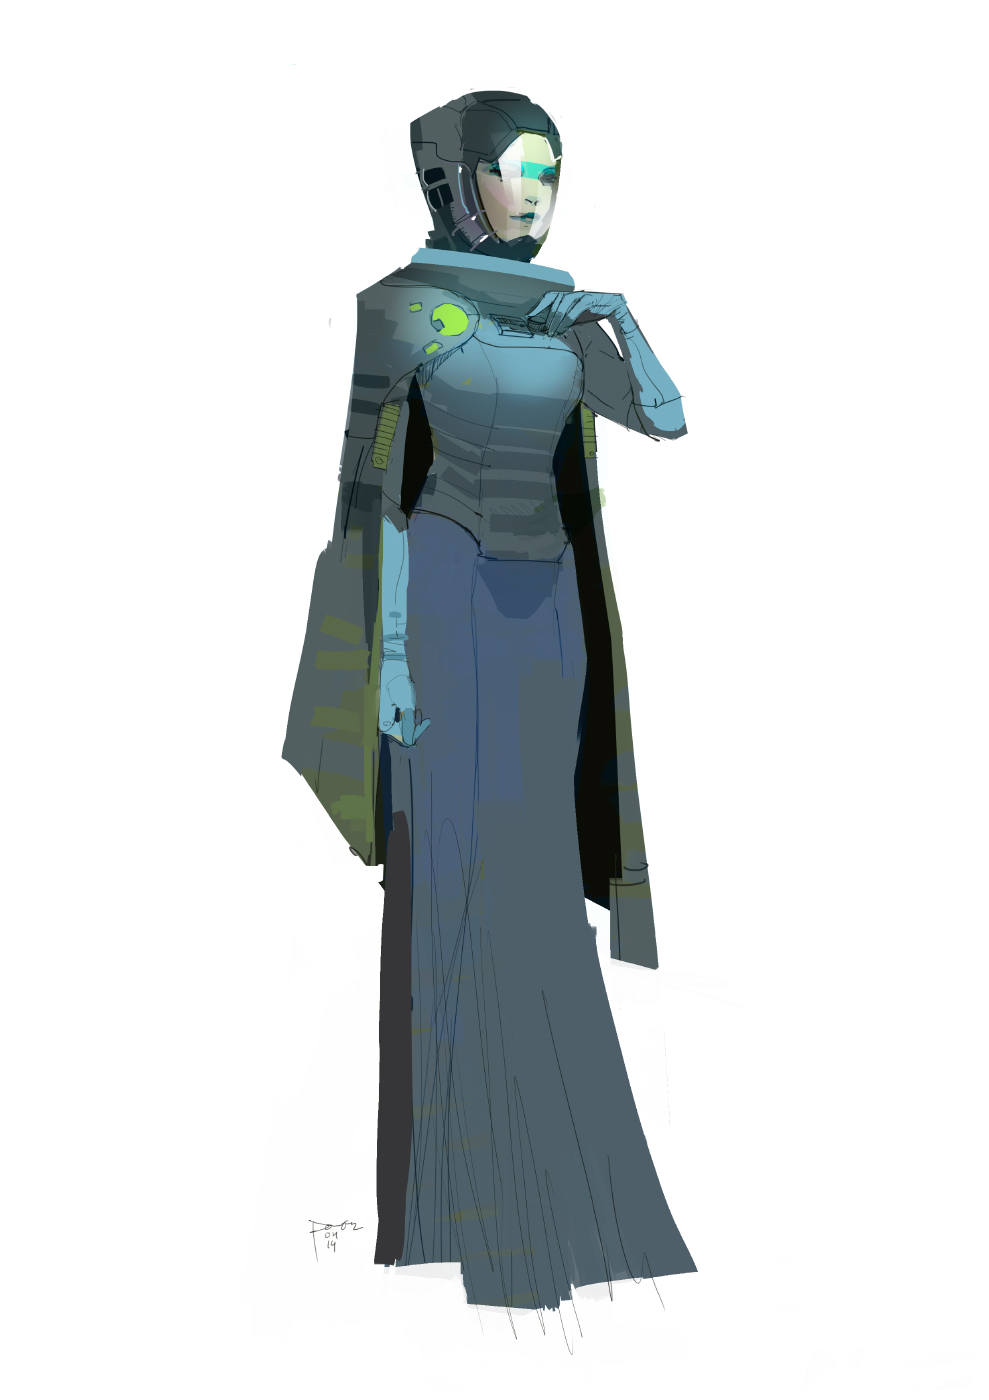 Force Character Design Pdf : Star wars the force awakens concept art by dermot power